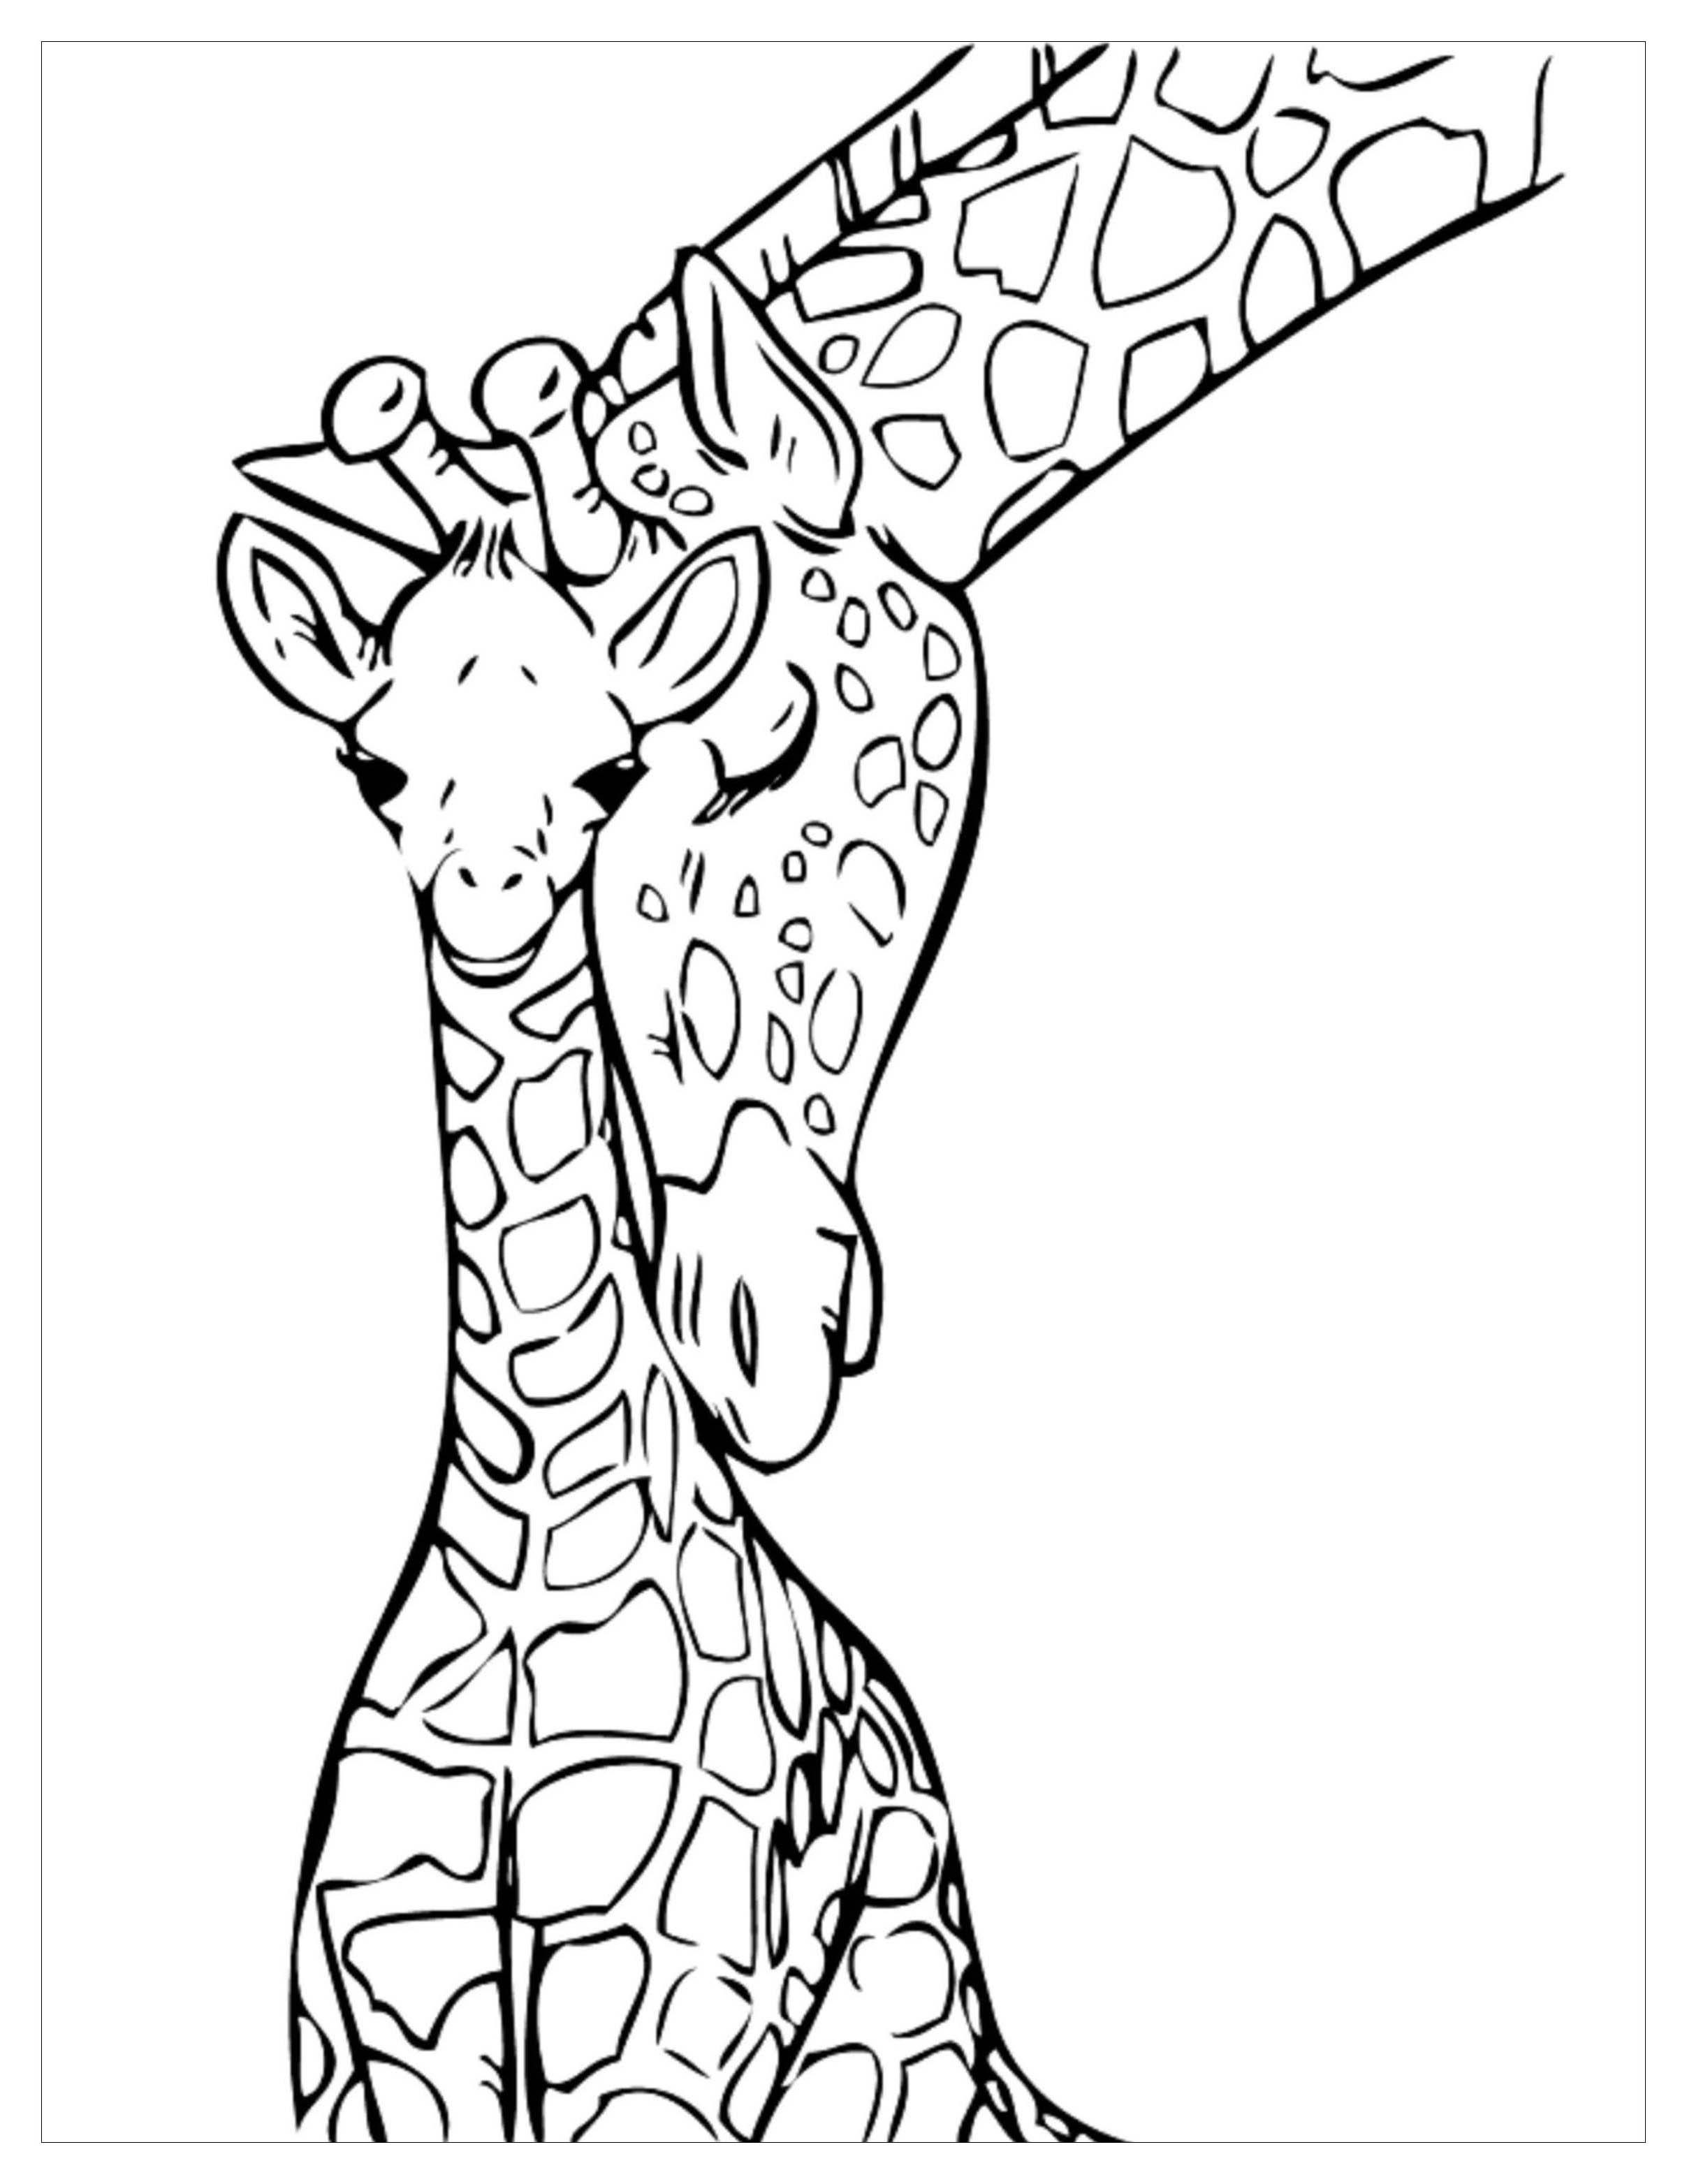 Giraffes for children - Giraffes Kids Coloring Pages